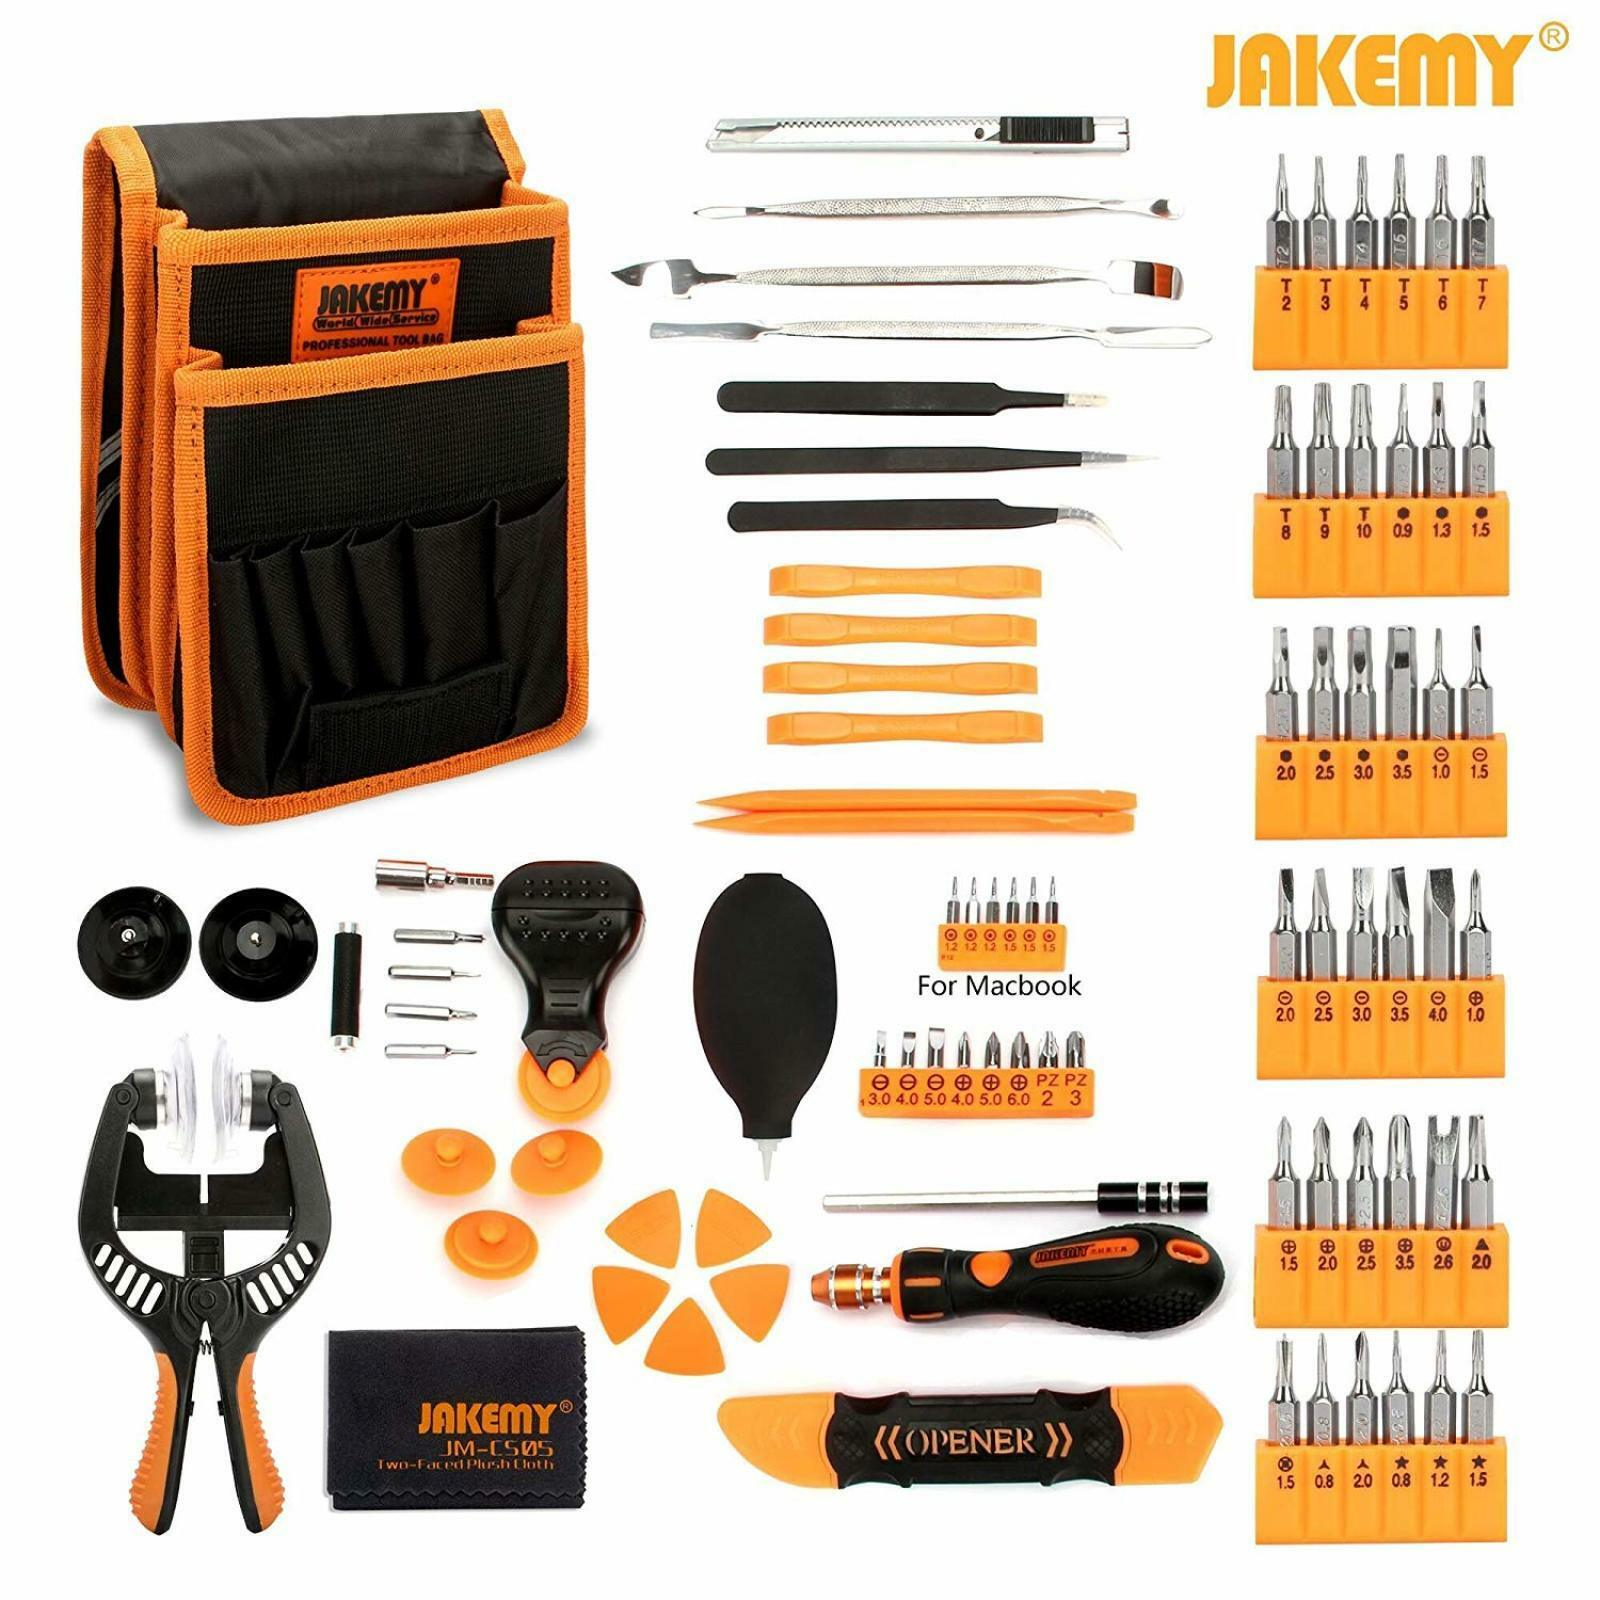 Screwdriver Set, 89 in 1 with 54 Magnetic Precision Driver Bits, Screwdriver